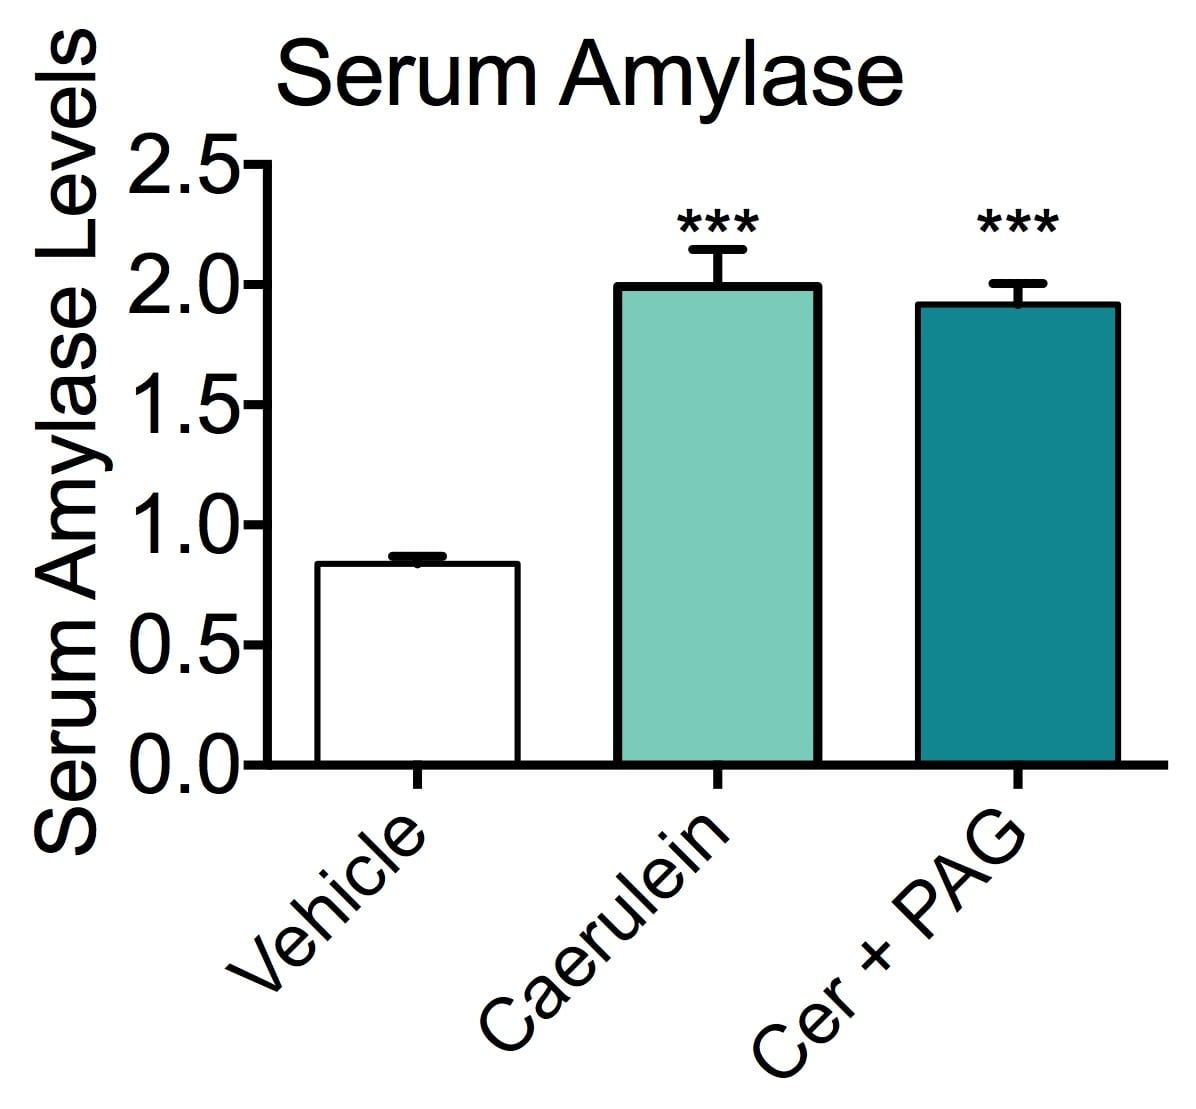 Levels of serum amylase in vehicle-treated and caerulein-treated mice, with or without DL-Propargylglycine pretreatment.